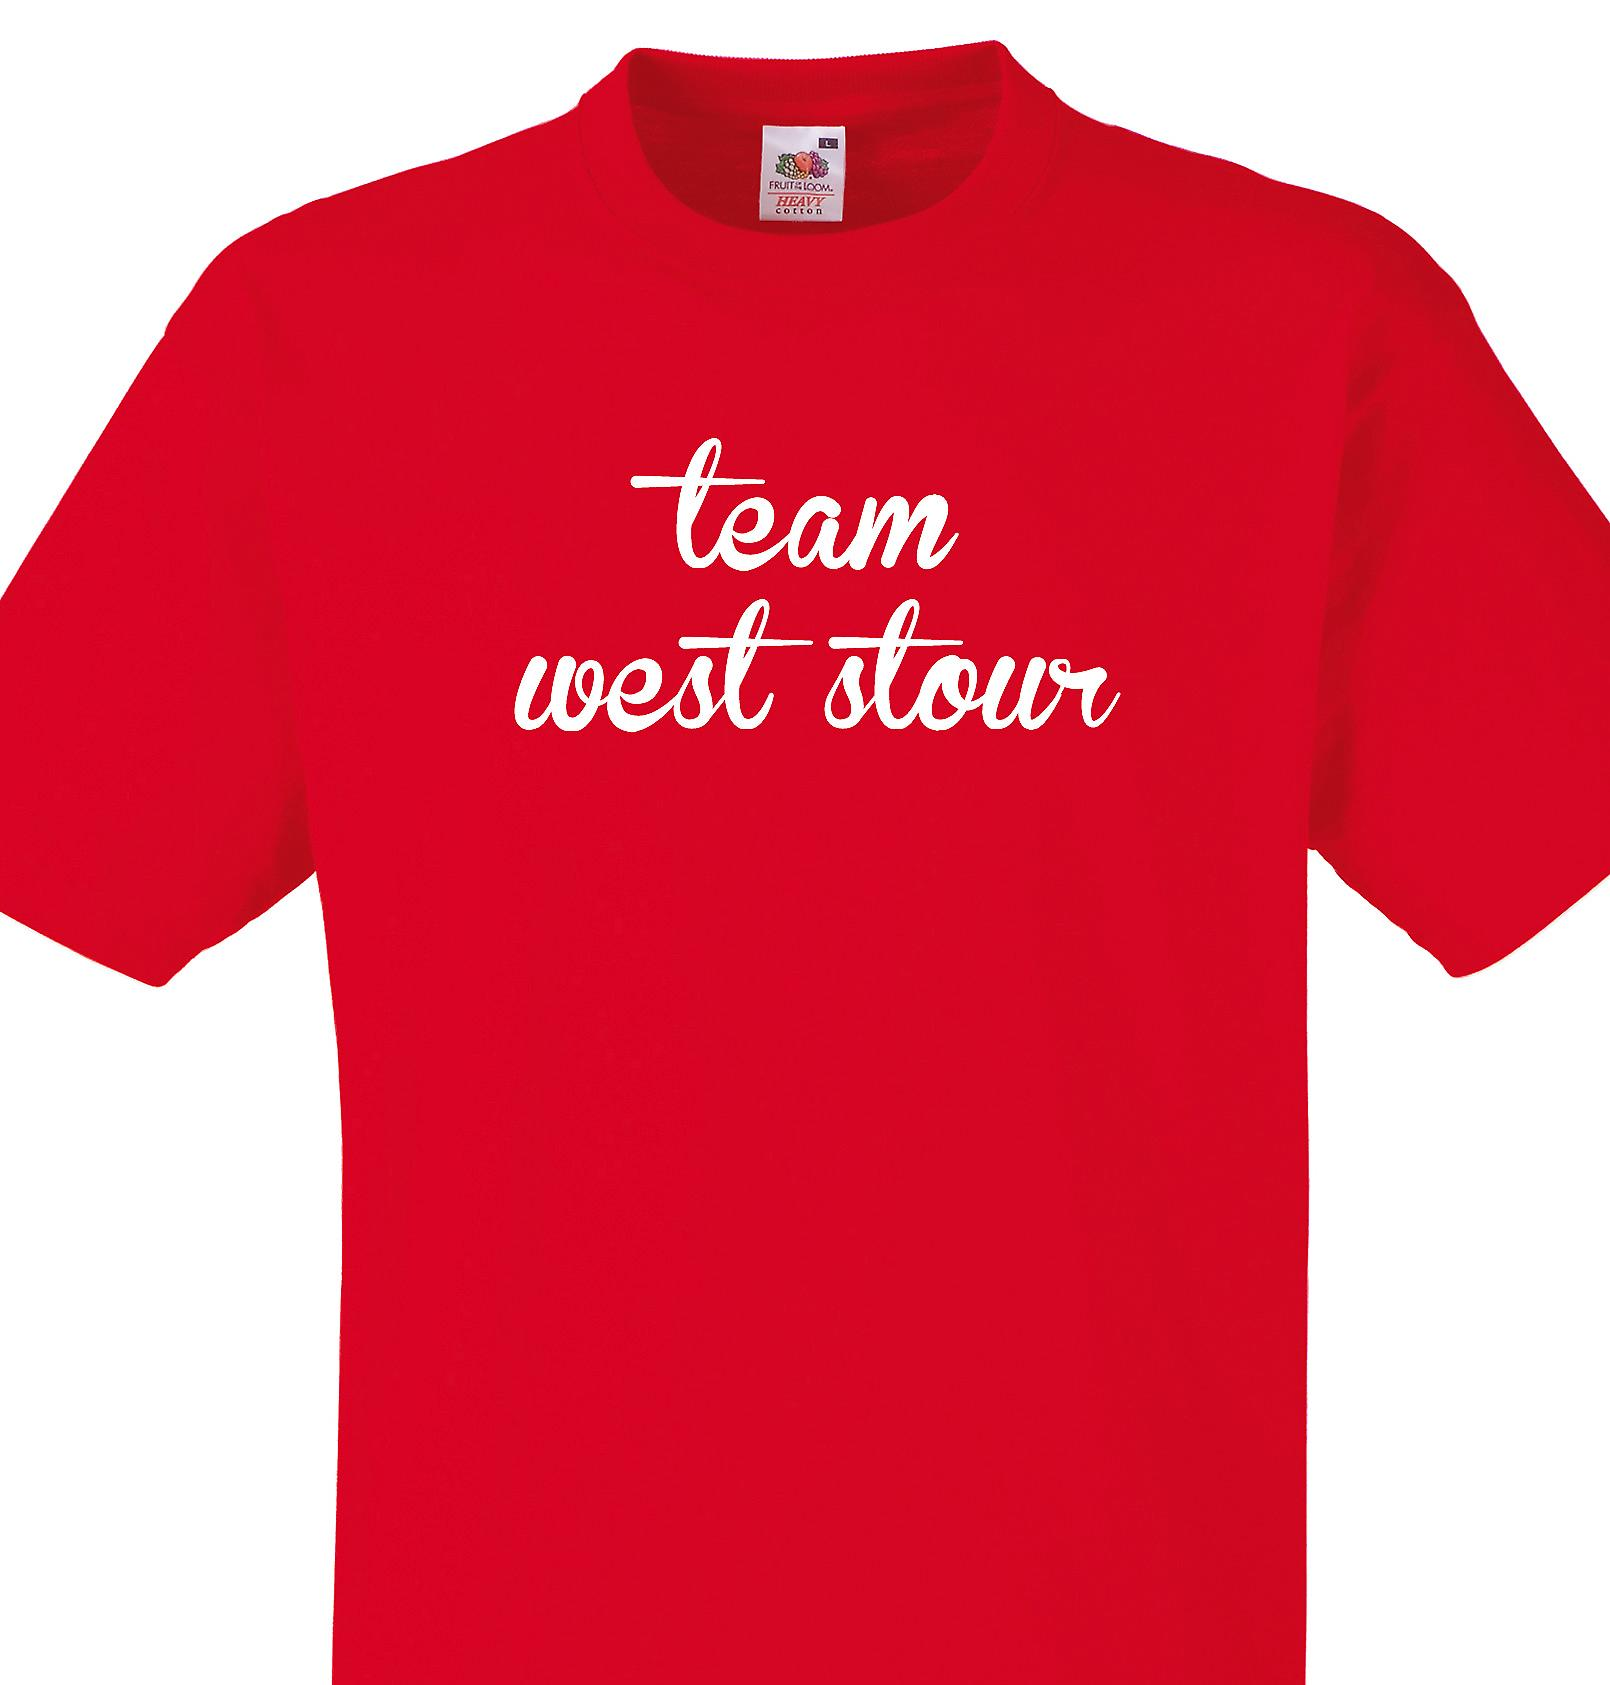 Team West stour Red T shirt